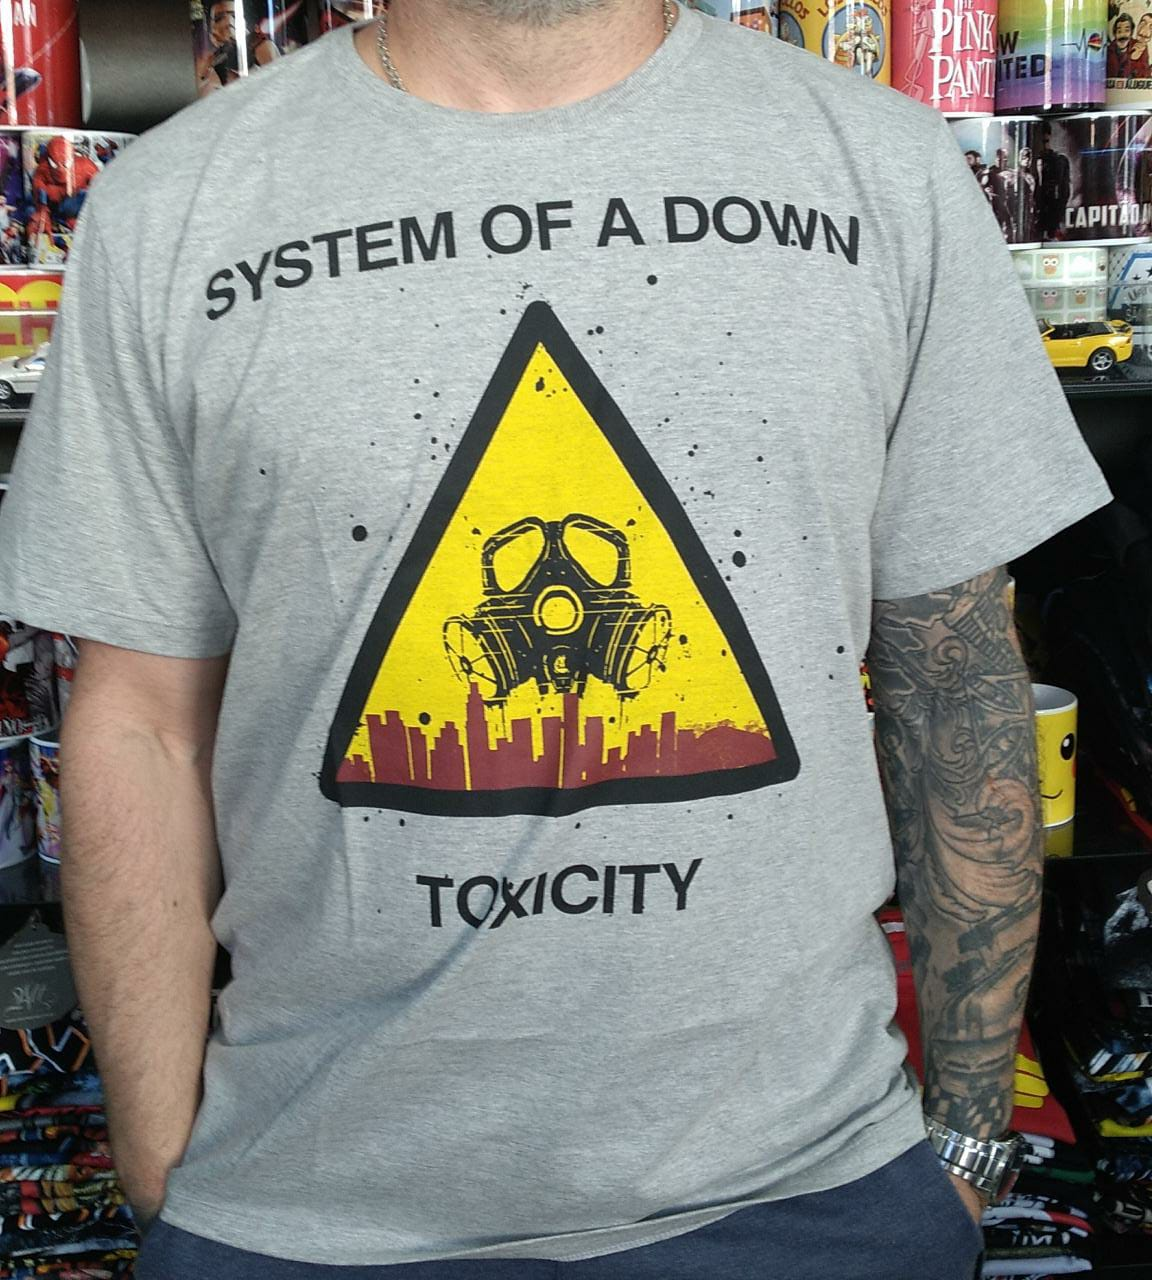 CAMISETA SYSTEM OF DOWN TOXICITY CINZA MESCLA